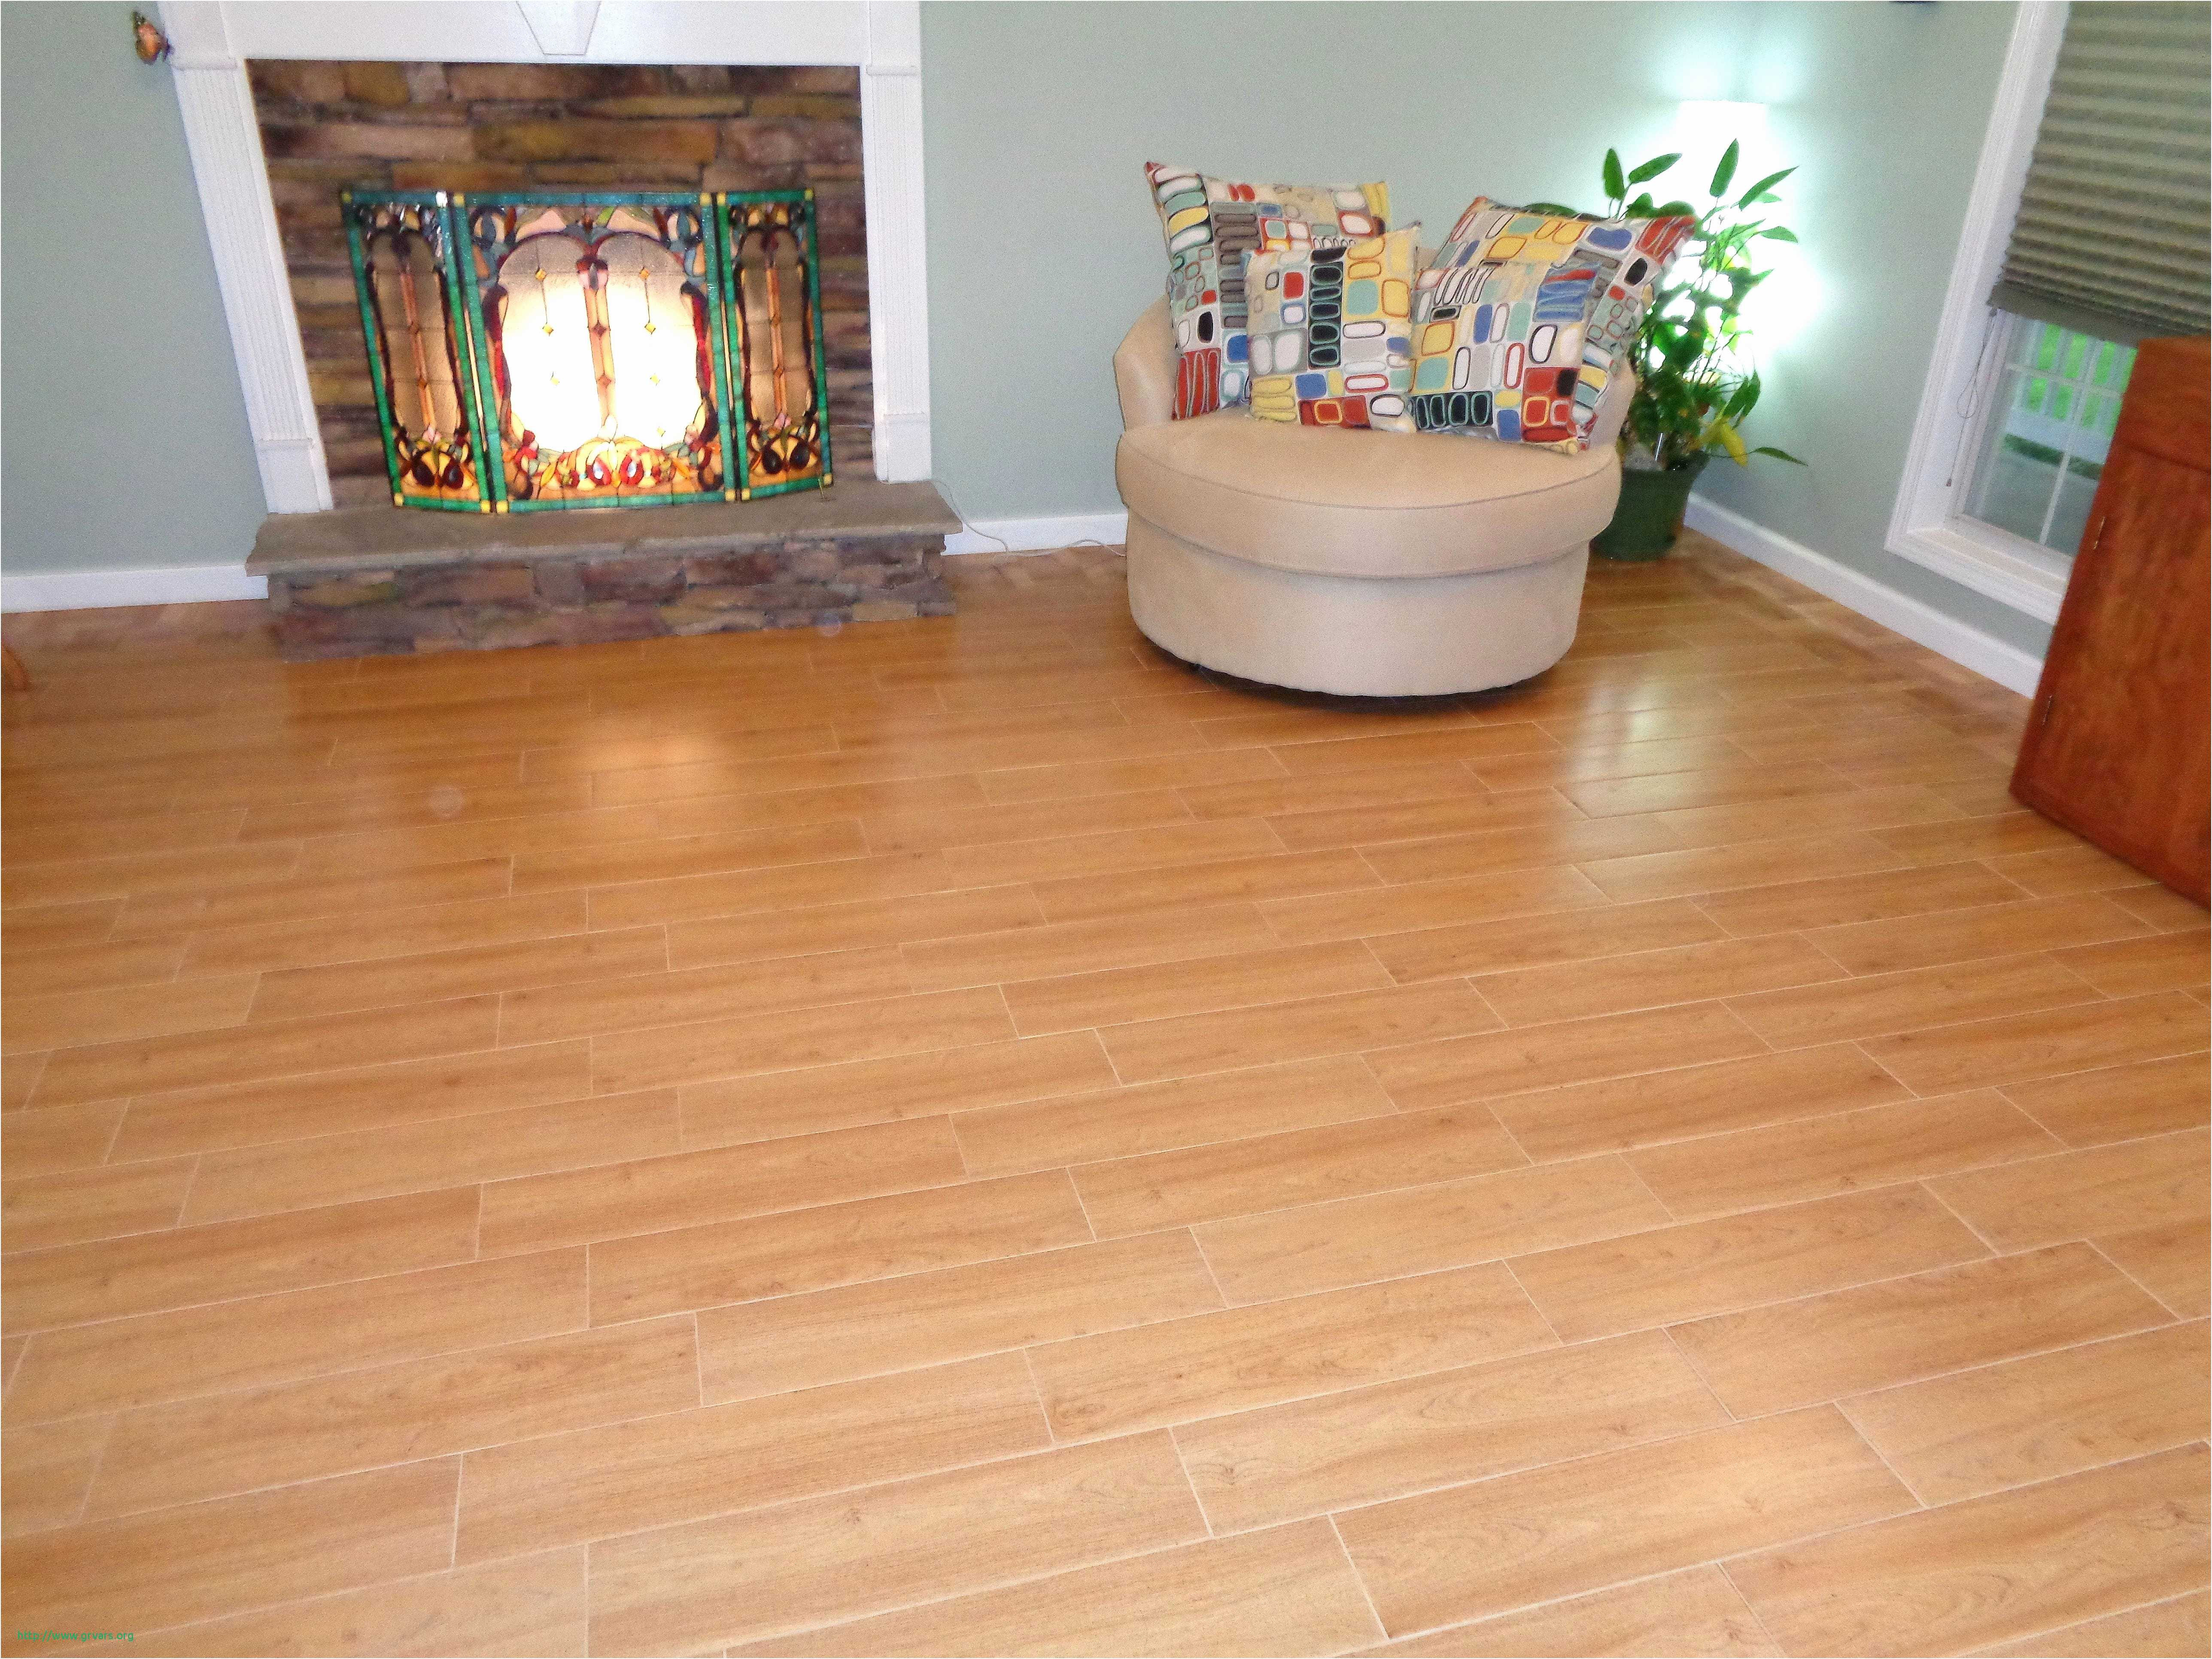 hardwood flooring sale mississauga of 24 inspirant how much are wood floors ideas blog for how much are wood floors beau laminated wooden flooring prices guide to solid hardwood floors